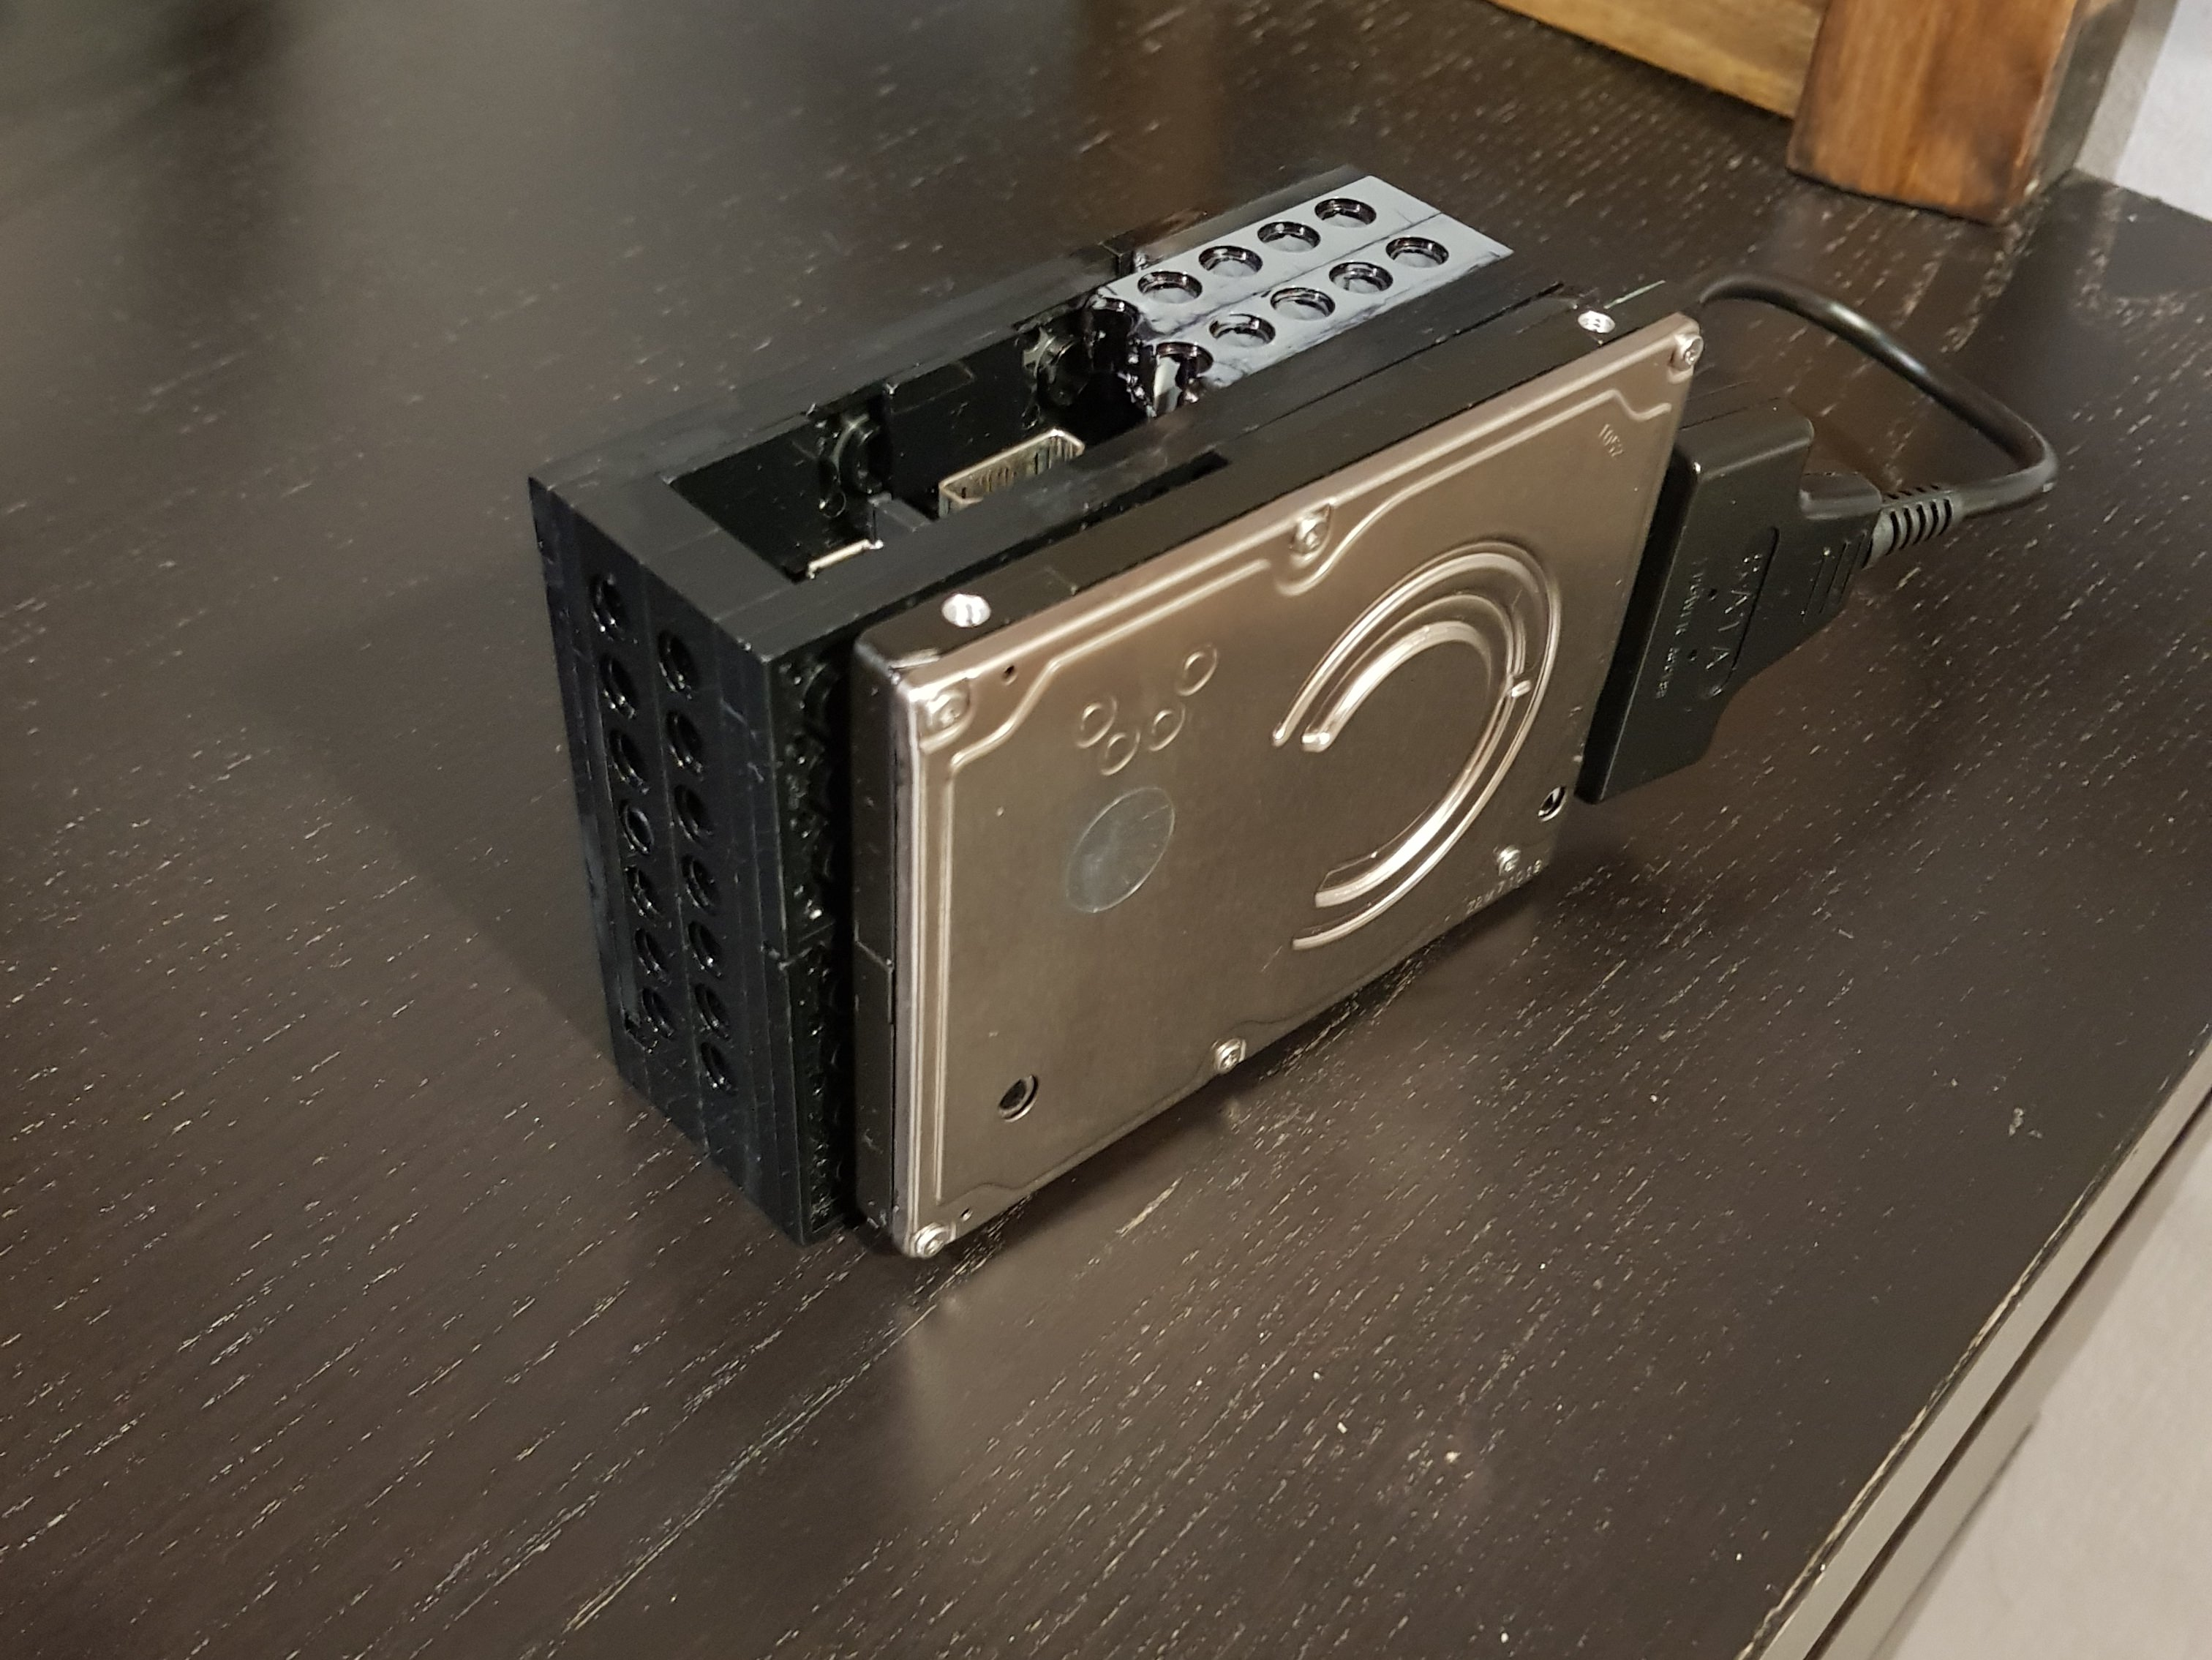 Figure 4 - HDD attached